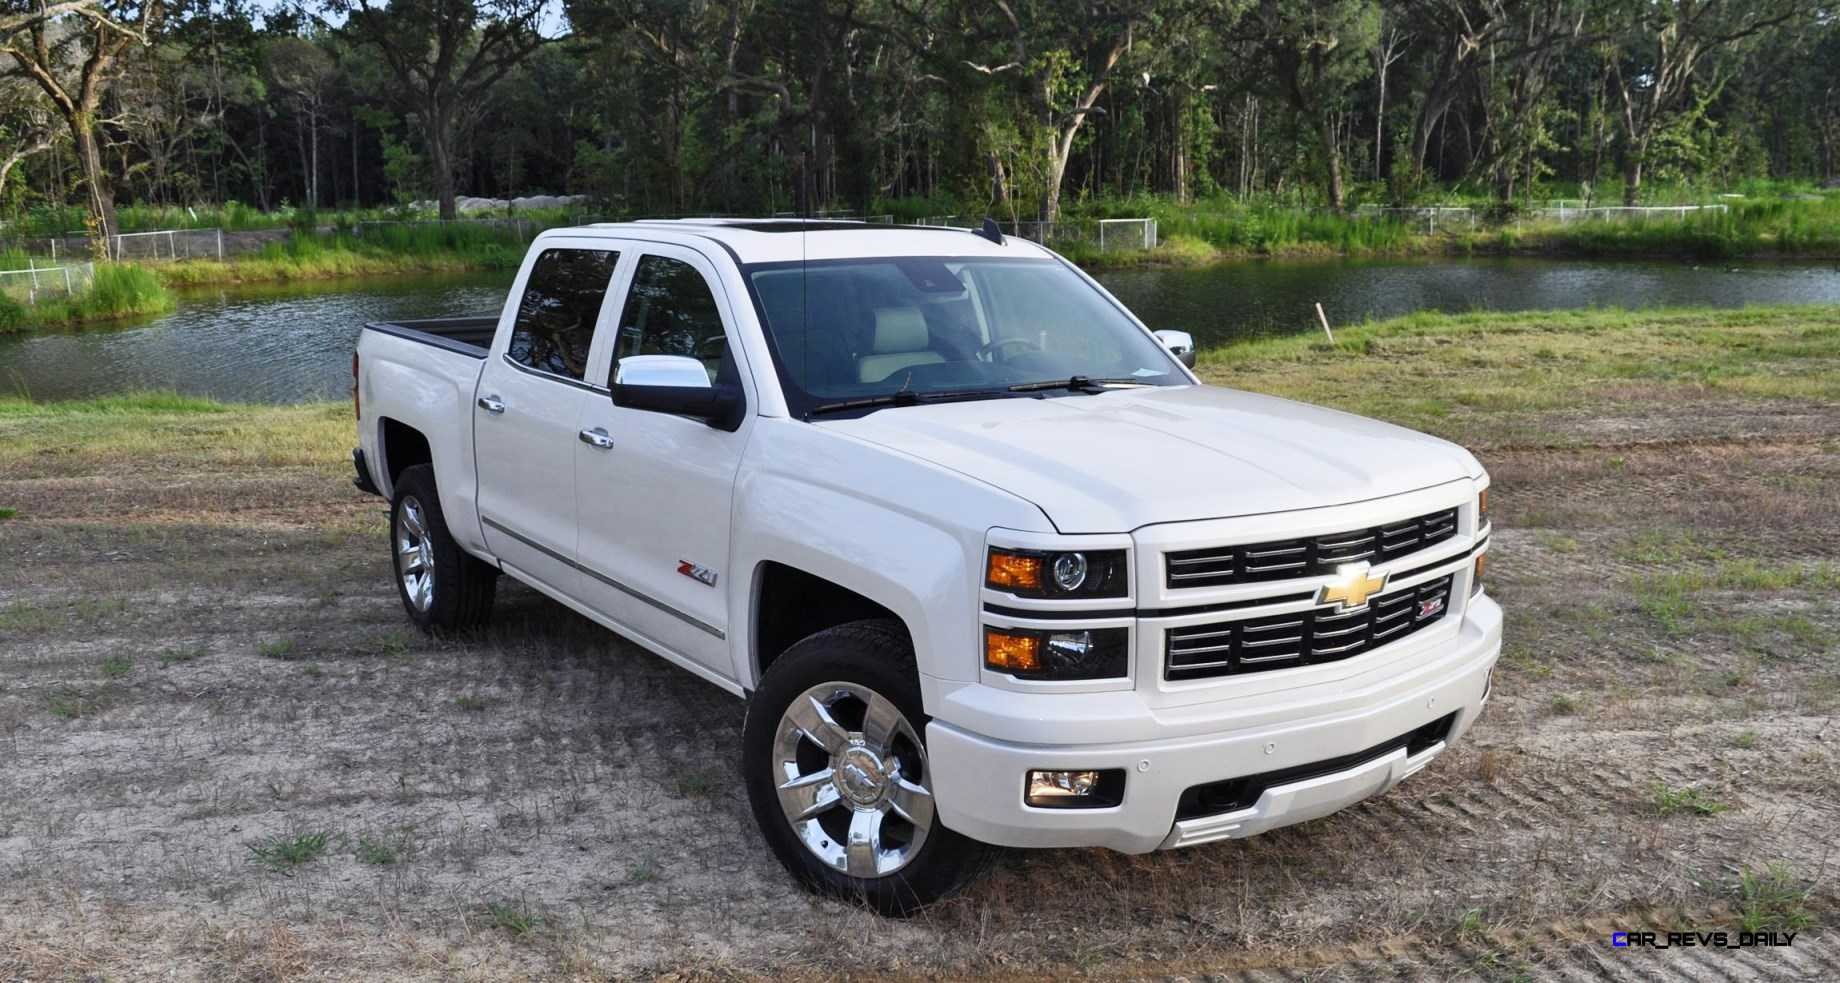 2015 silverado ltz z71 images galleries with a bite. Black Bedroom Furniture Sets. Home Design Ideas